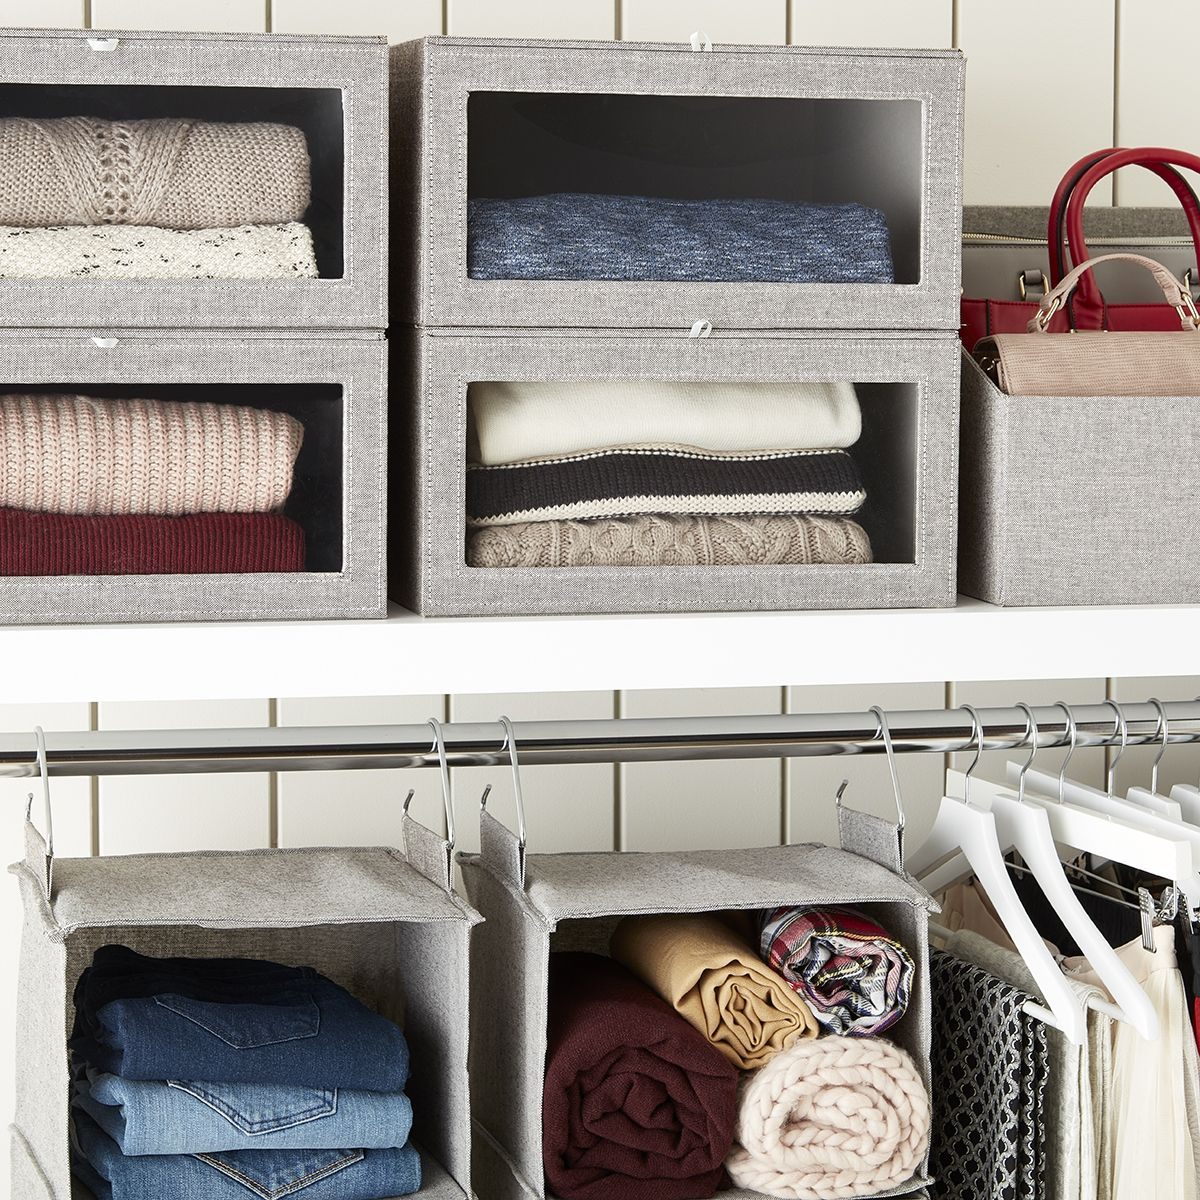 Cute And Stylish Ways To Keep Your Sweaters Organized Storage Closet Organization Closet Organization Bins Closet Built Ins